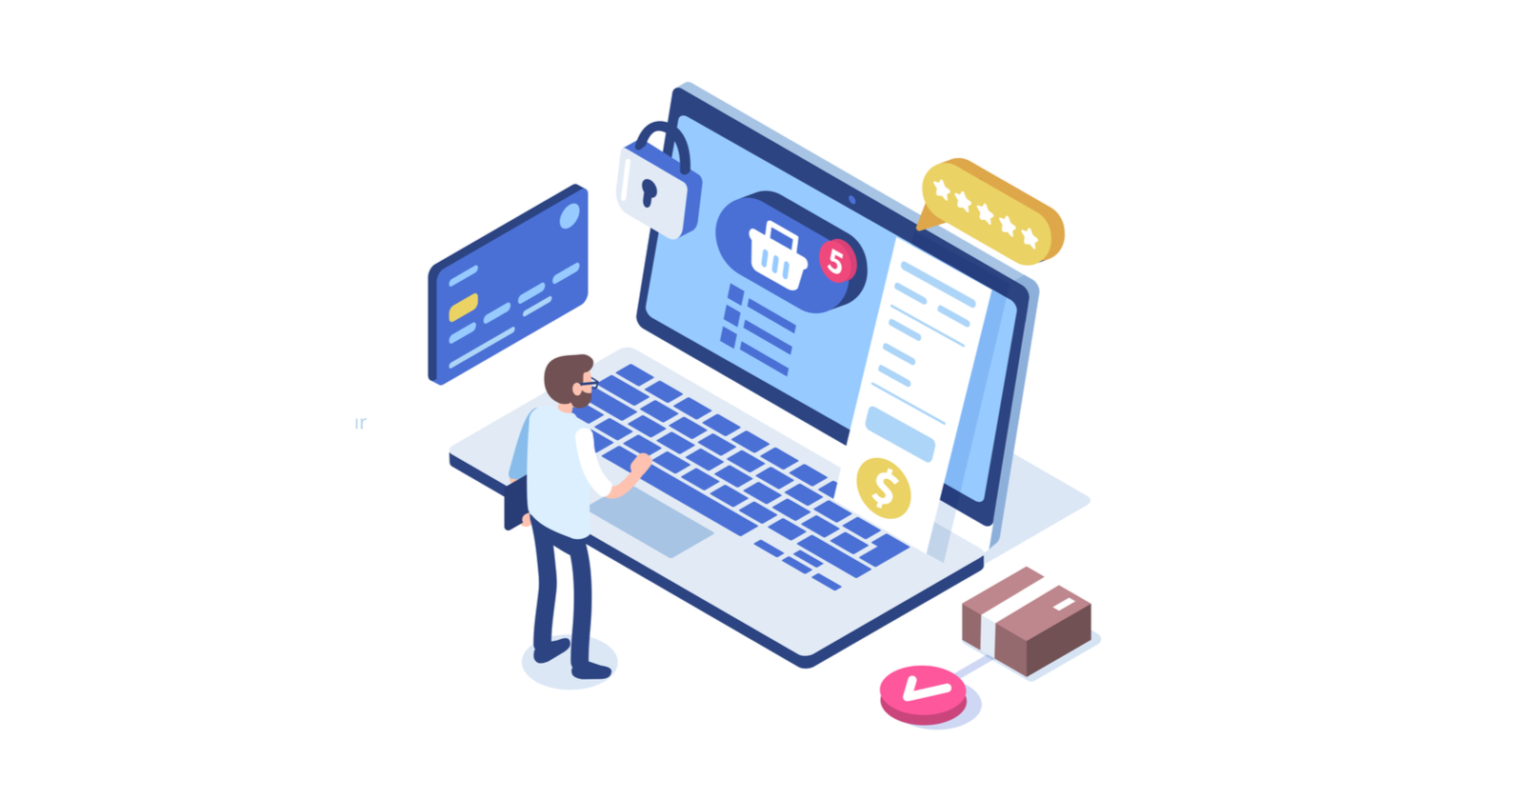 ECommerce Trends That Will Dominate The Online Market In 2021